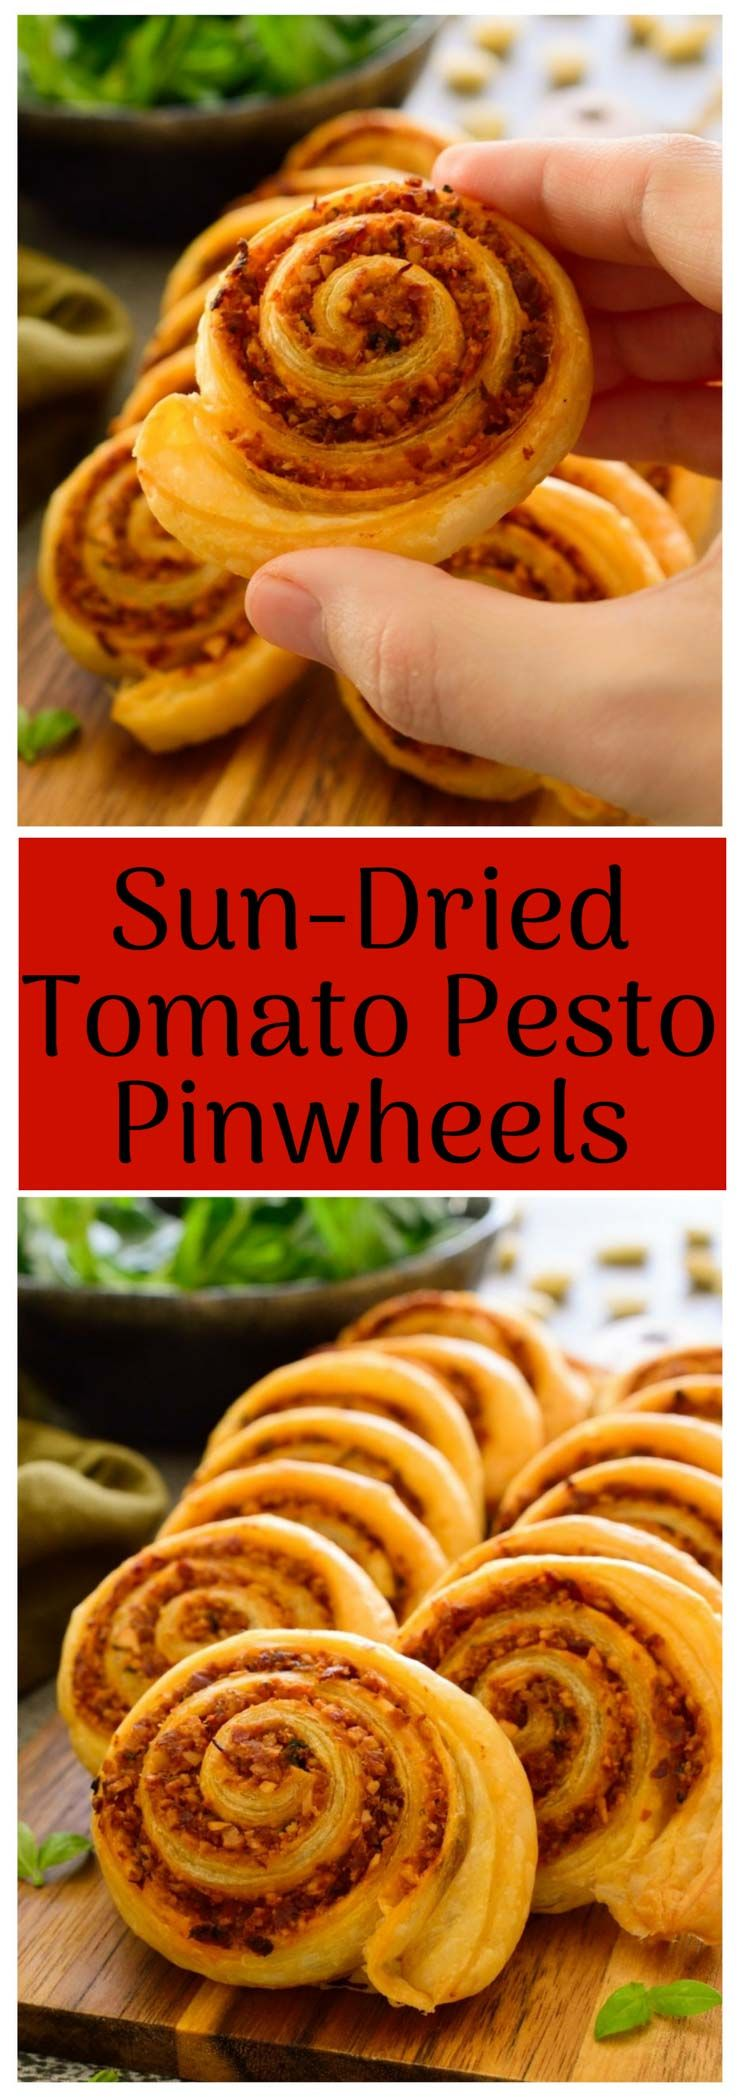 Vegan Pinwheels with Sun-Dried Tomato Pesto #appetizersforparty